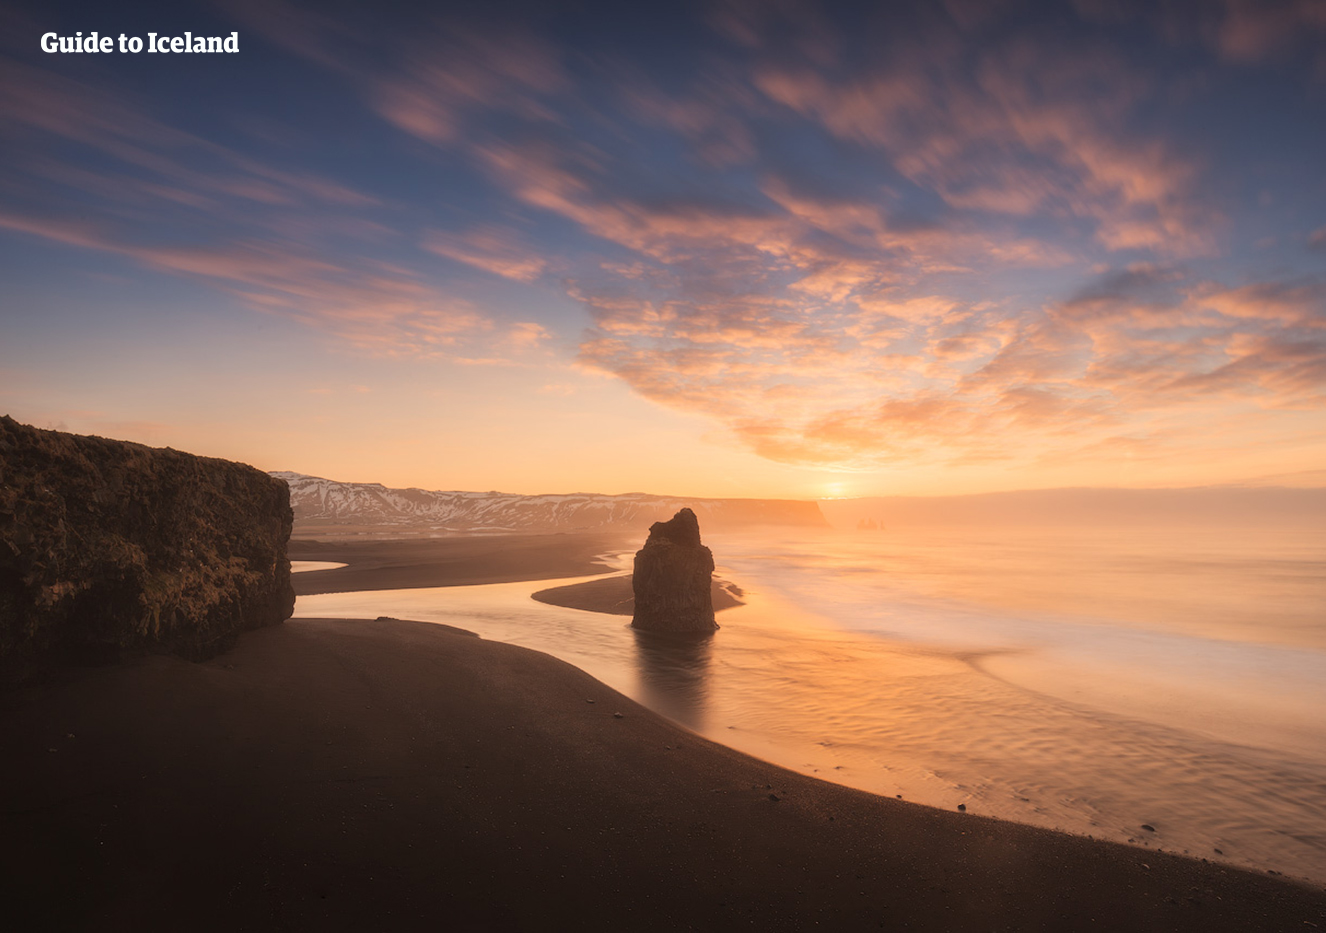 Reynisfjara black sand beach was used as a backdrop for some scenes in Game of Thrones season 7.